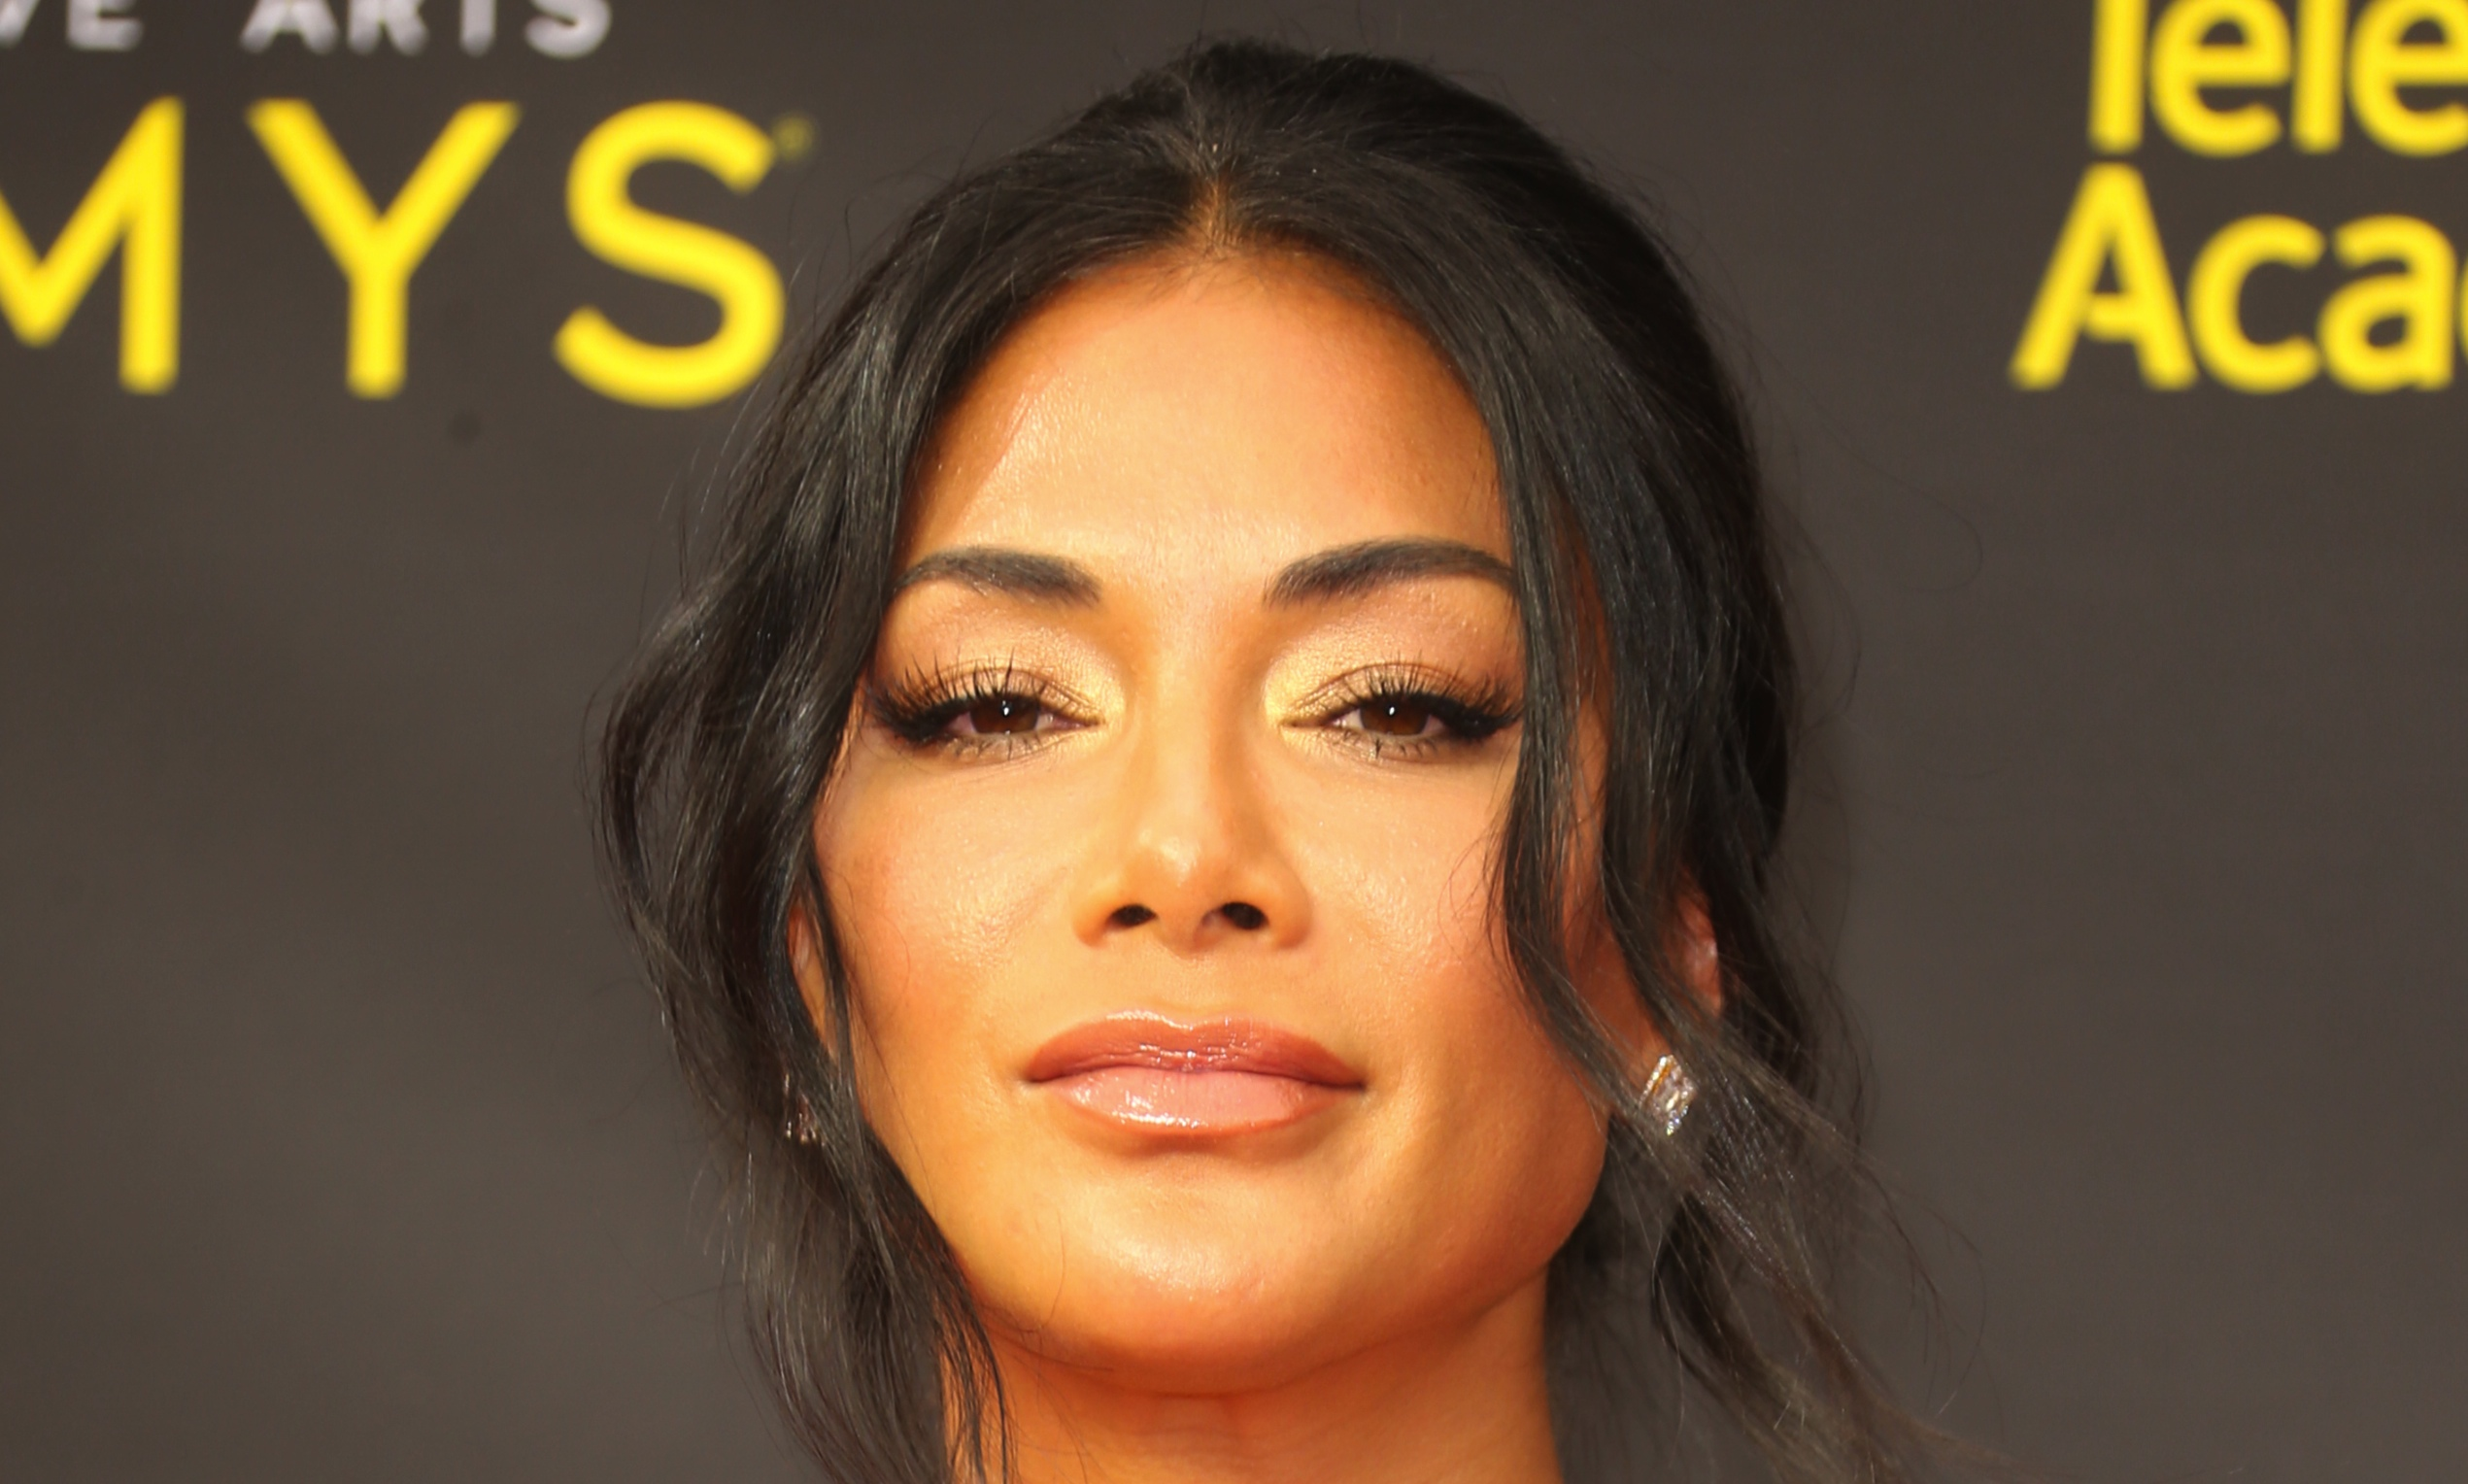 Nicole Scherzinger's Instagram 'plastered with naked photos after being hacked'